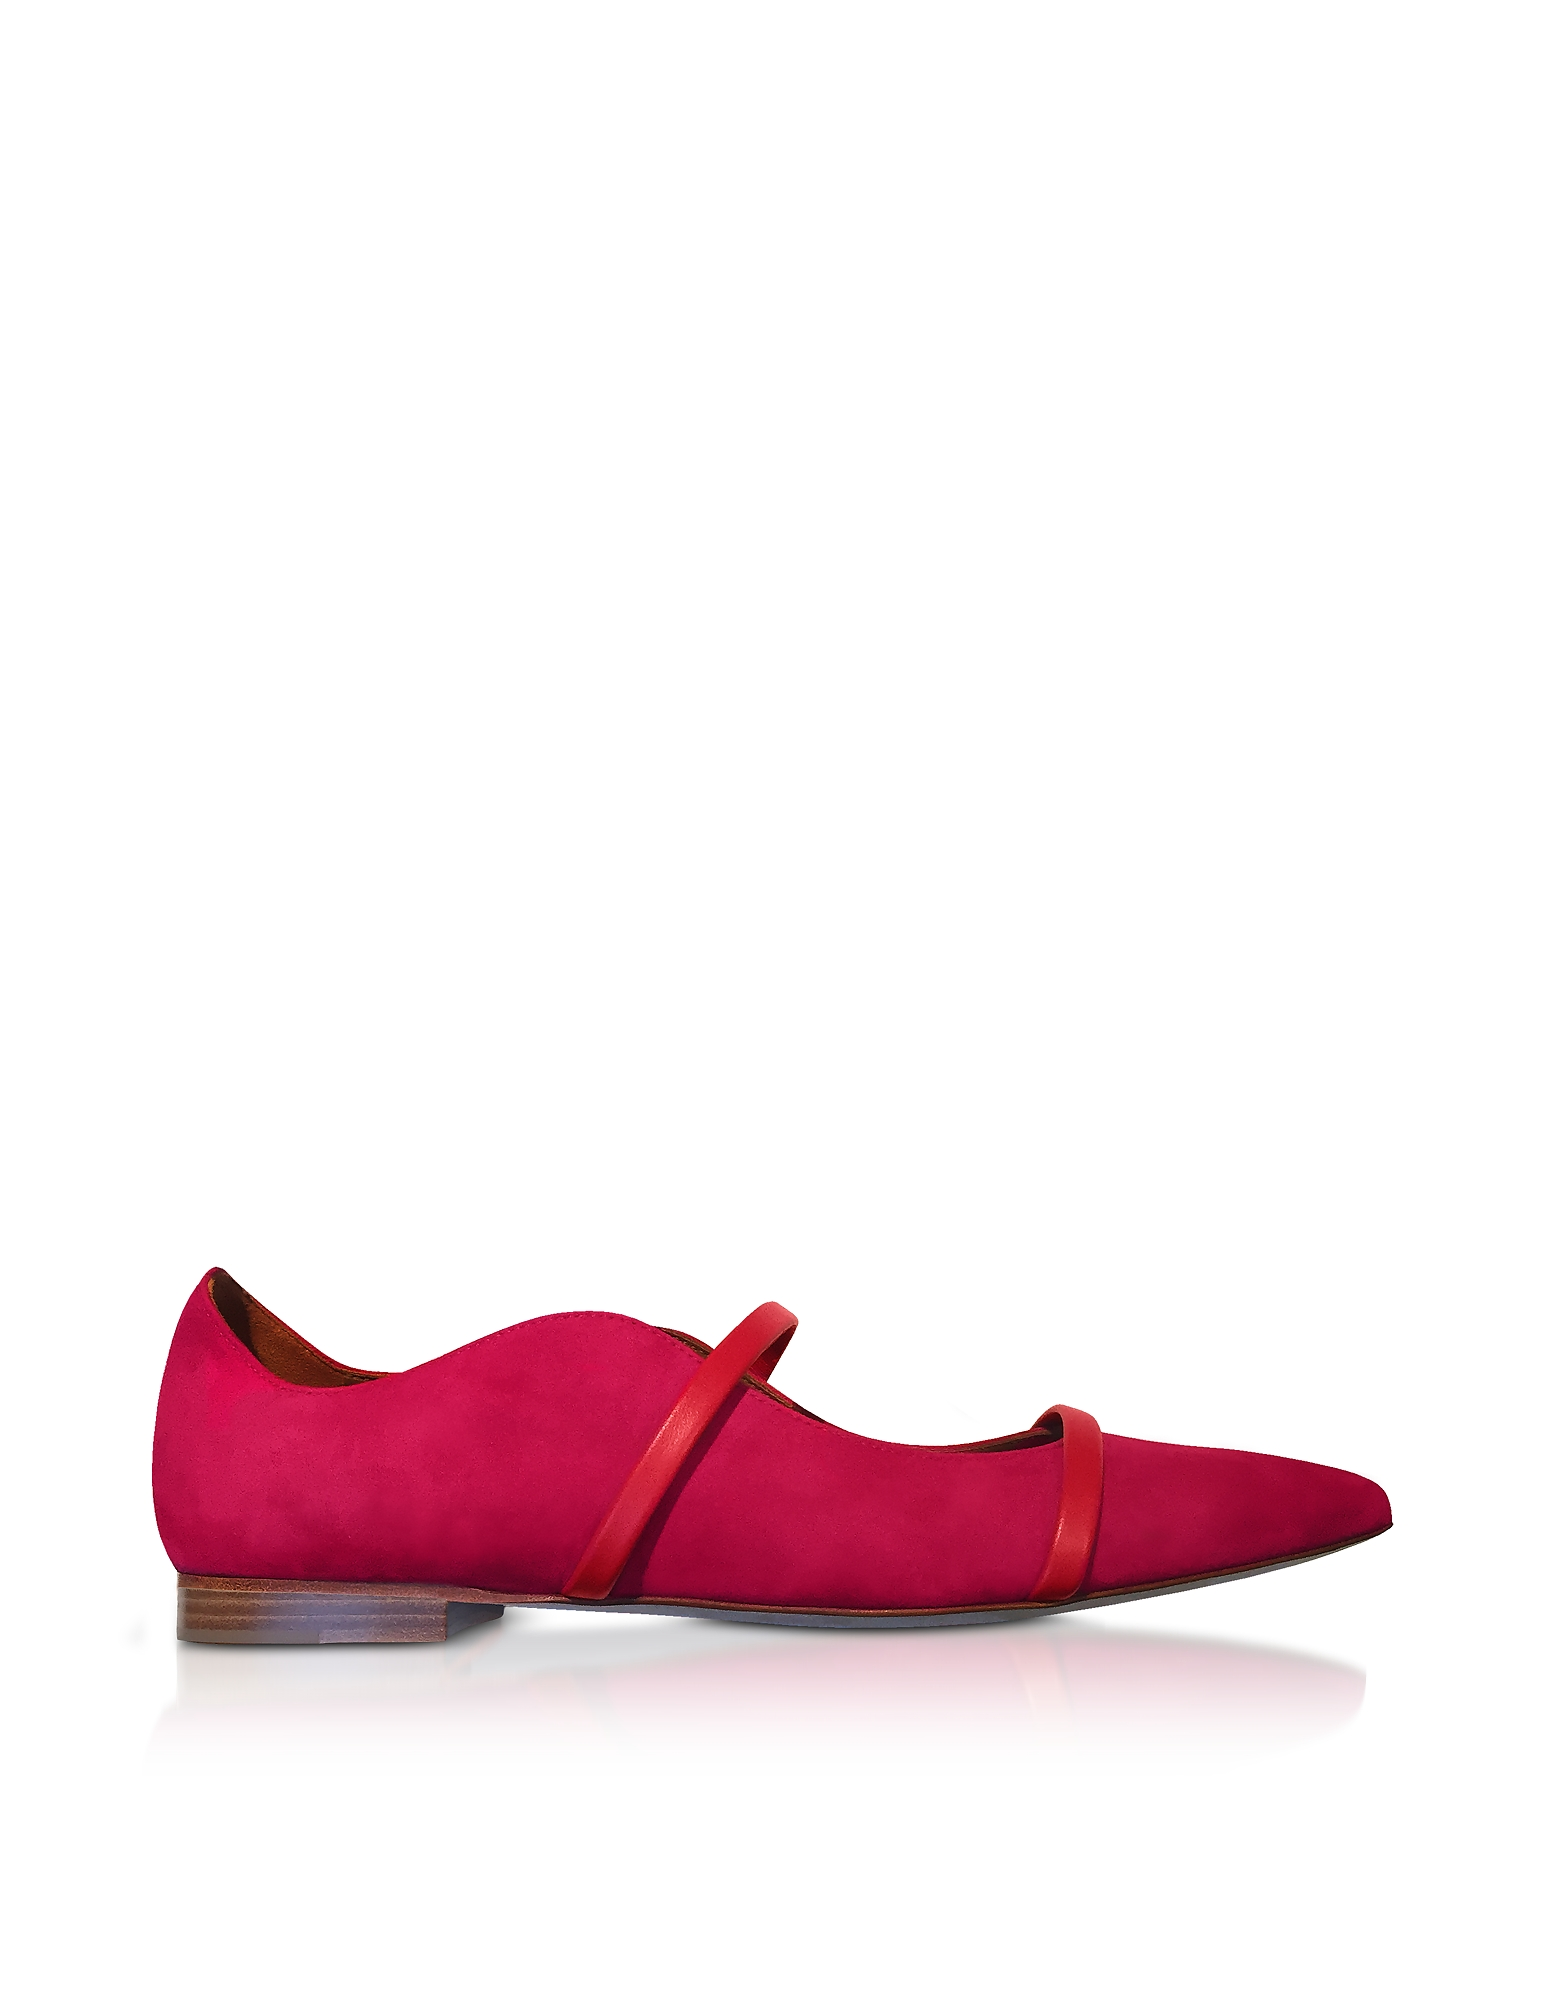 Maureen Red Suede and Cherry Nappa Flat Pumps